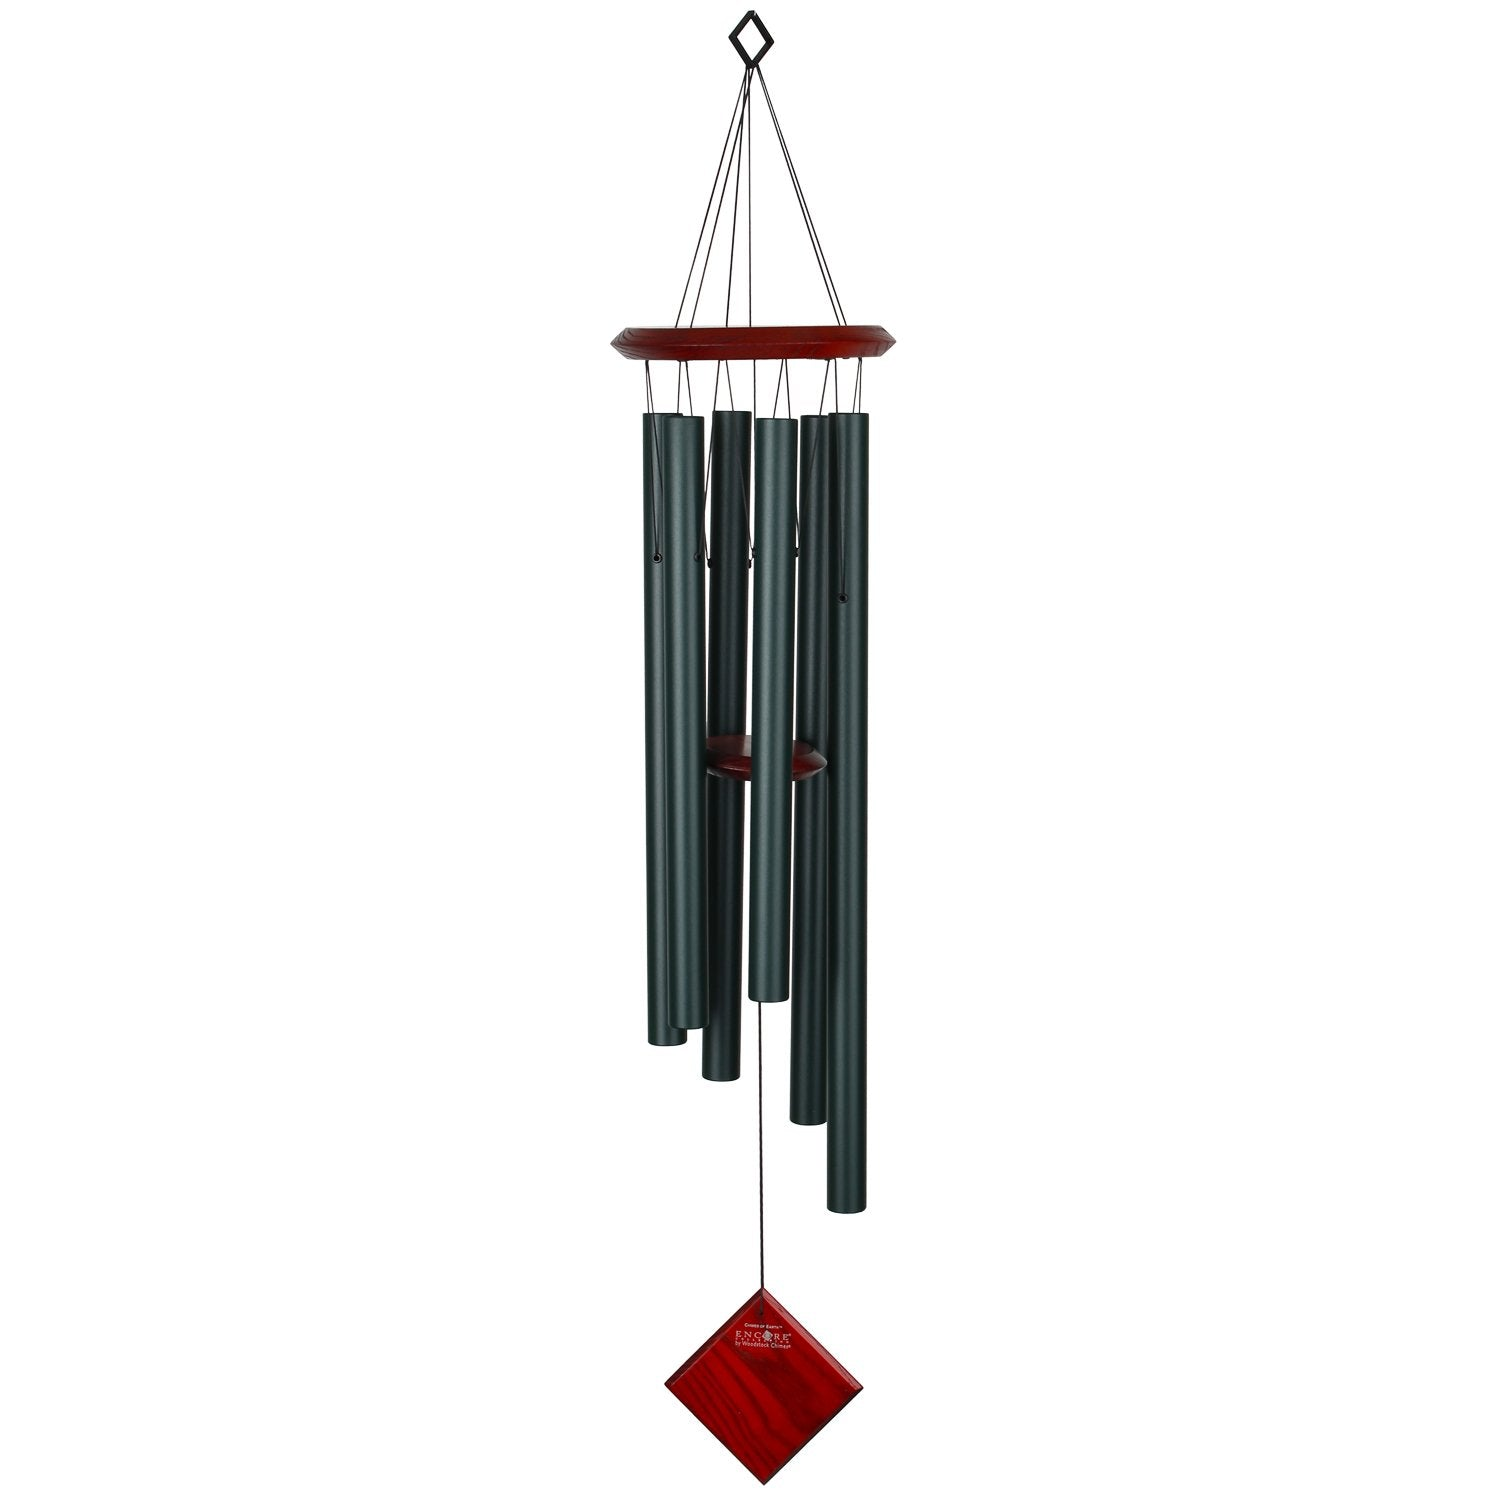 Encore Chimes of Earth - Evergreen full product image